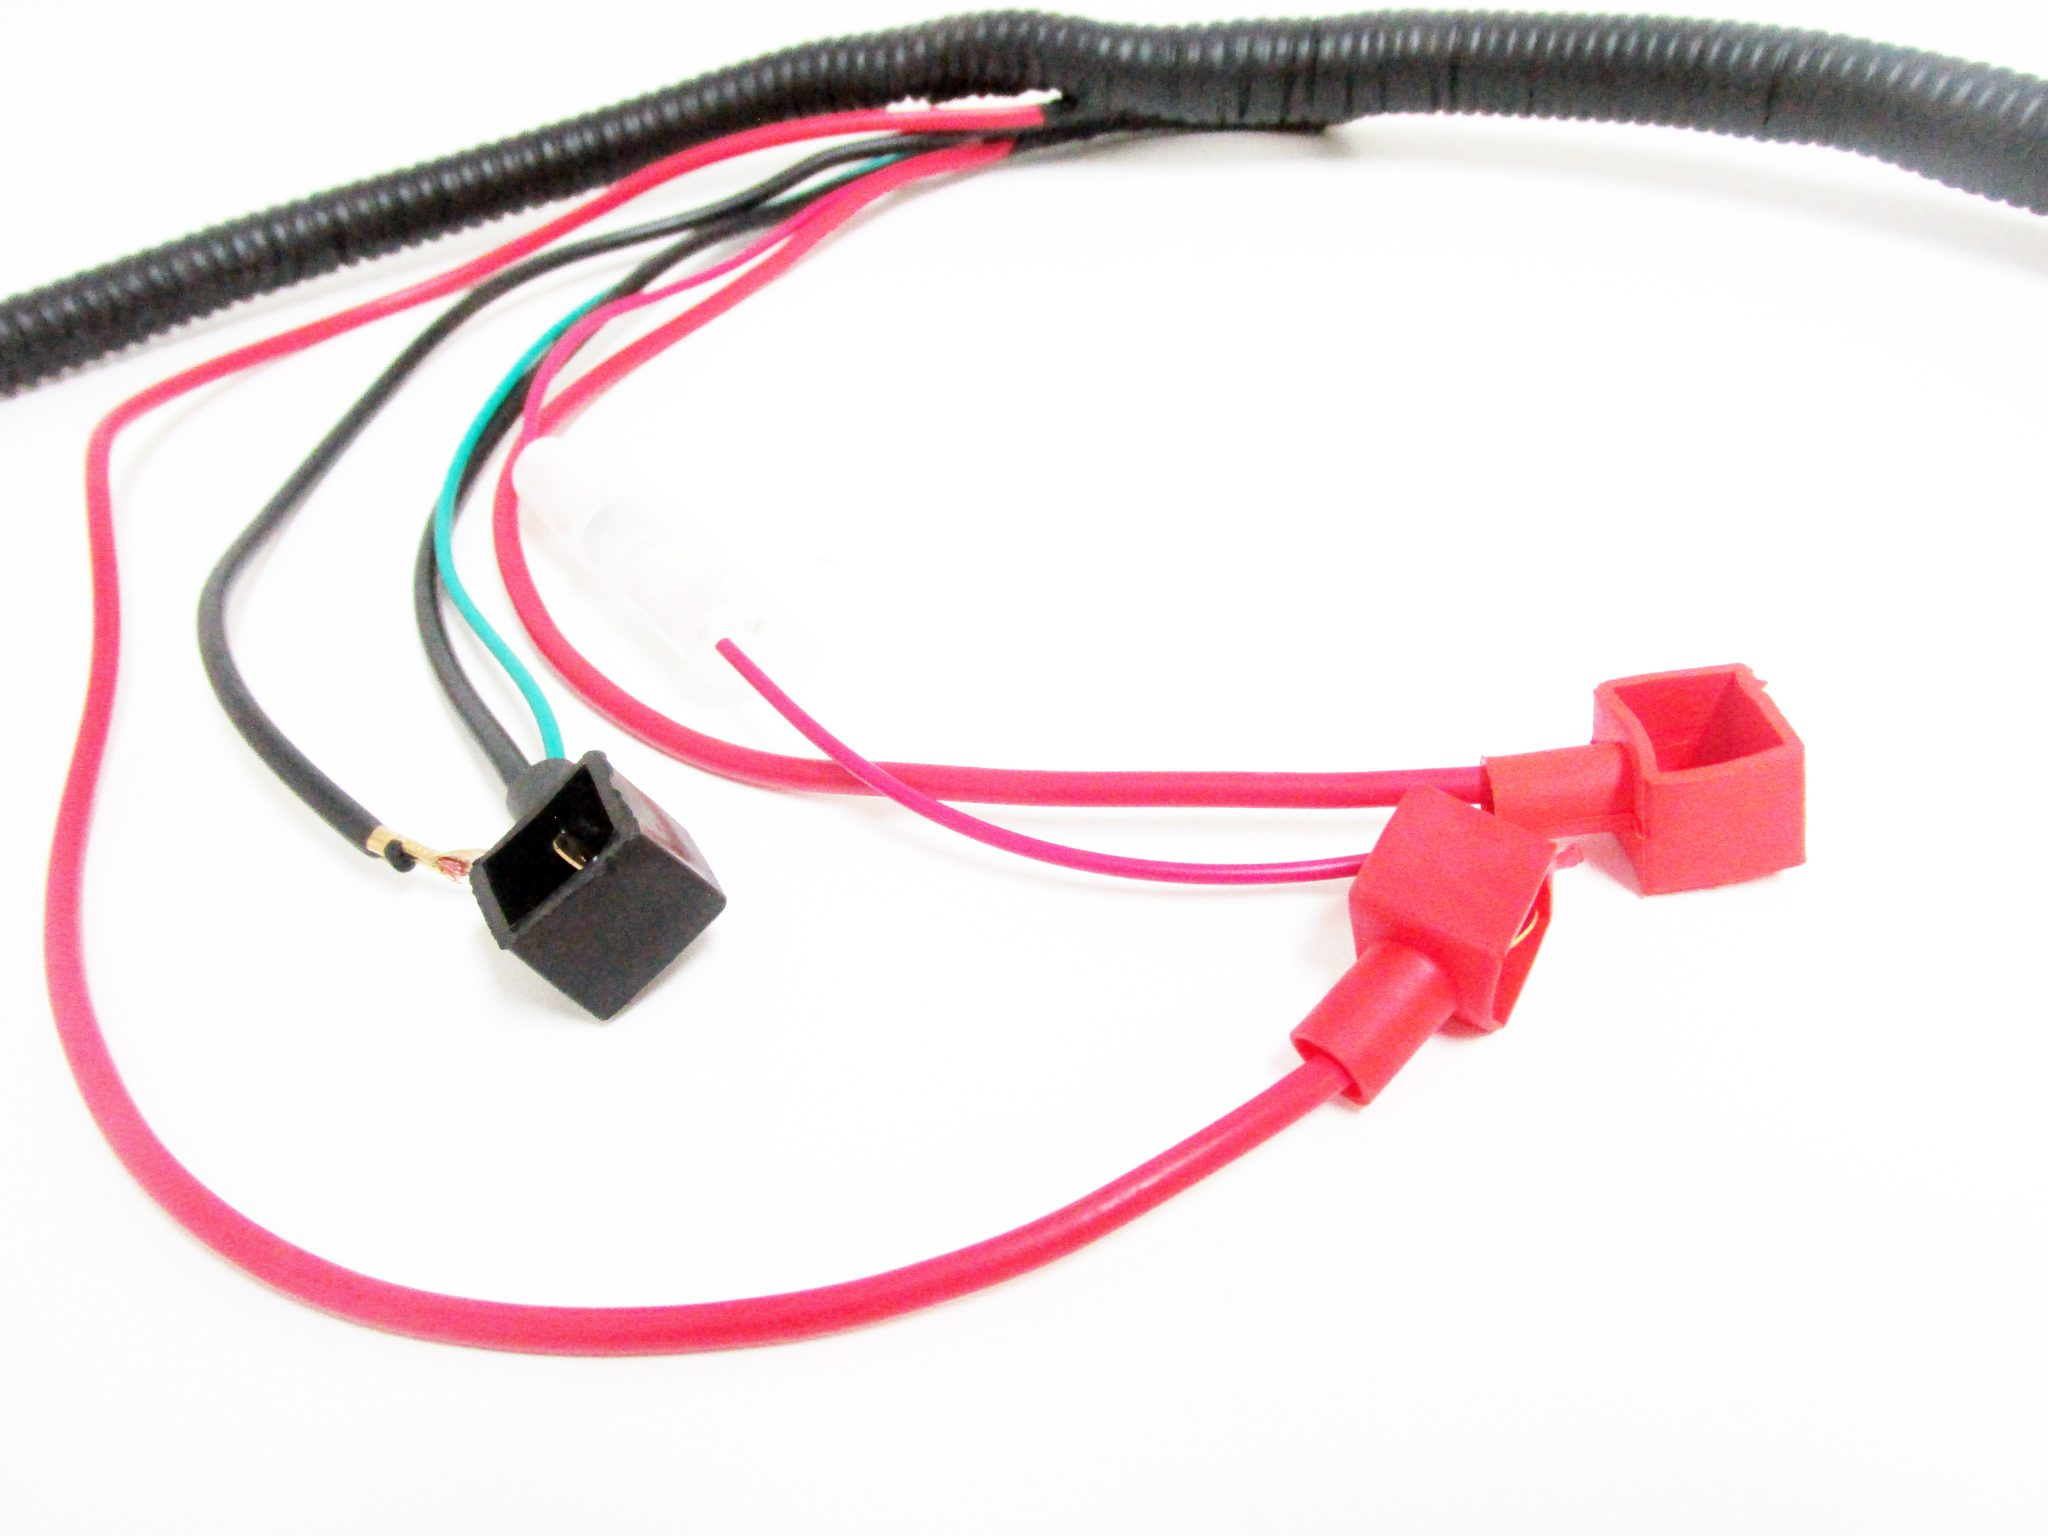 Scooter Electrical Wire Harness 150cc/125cc